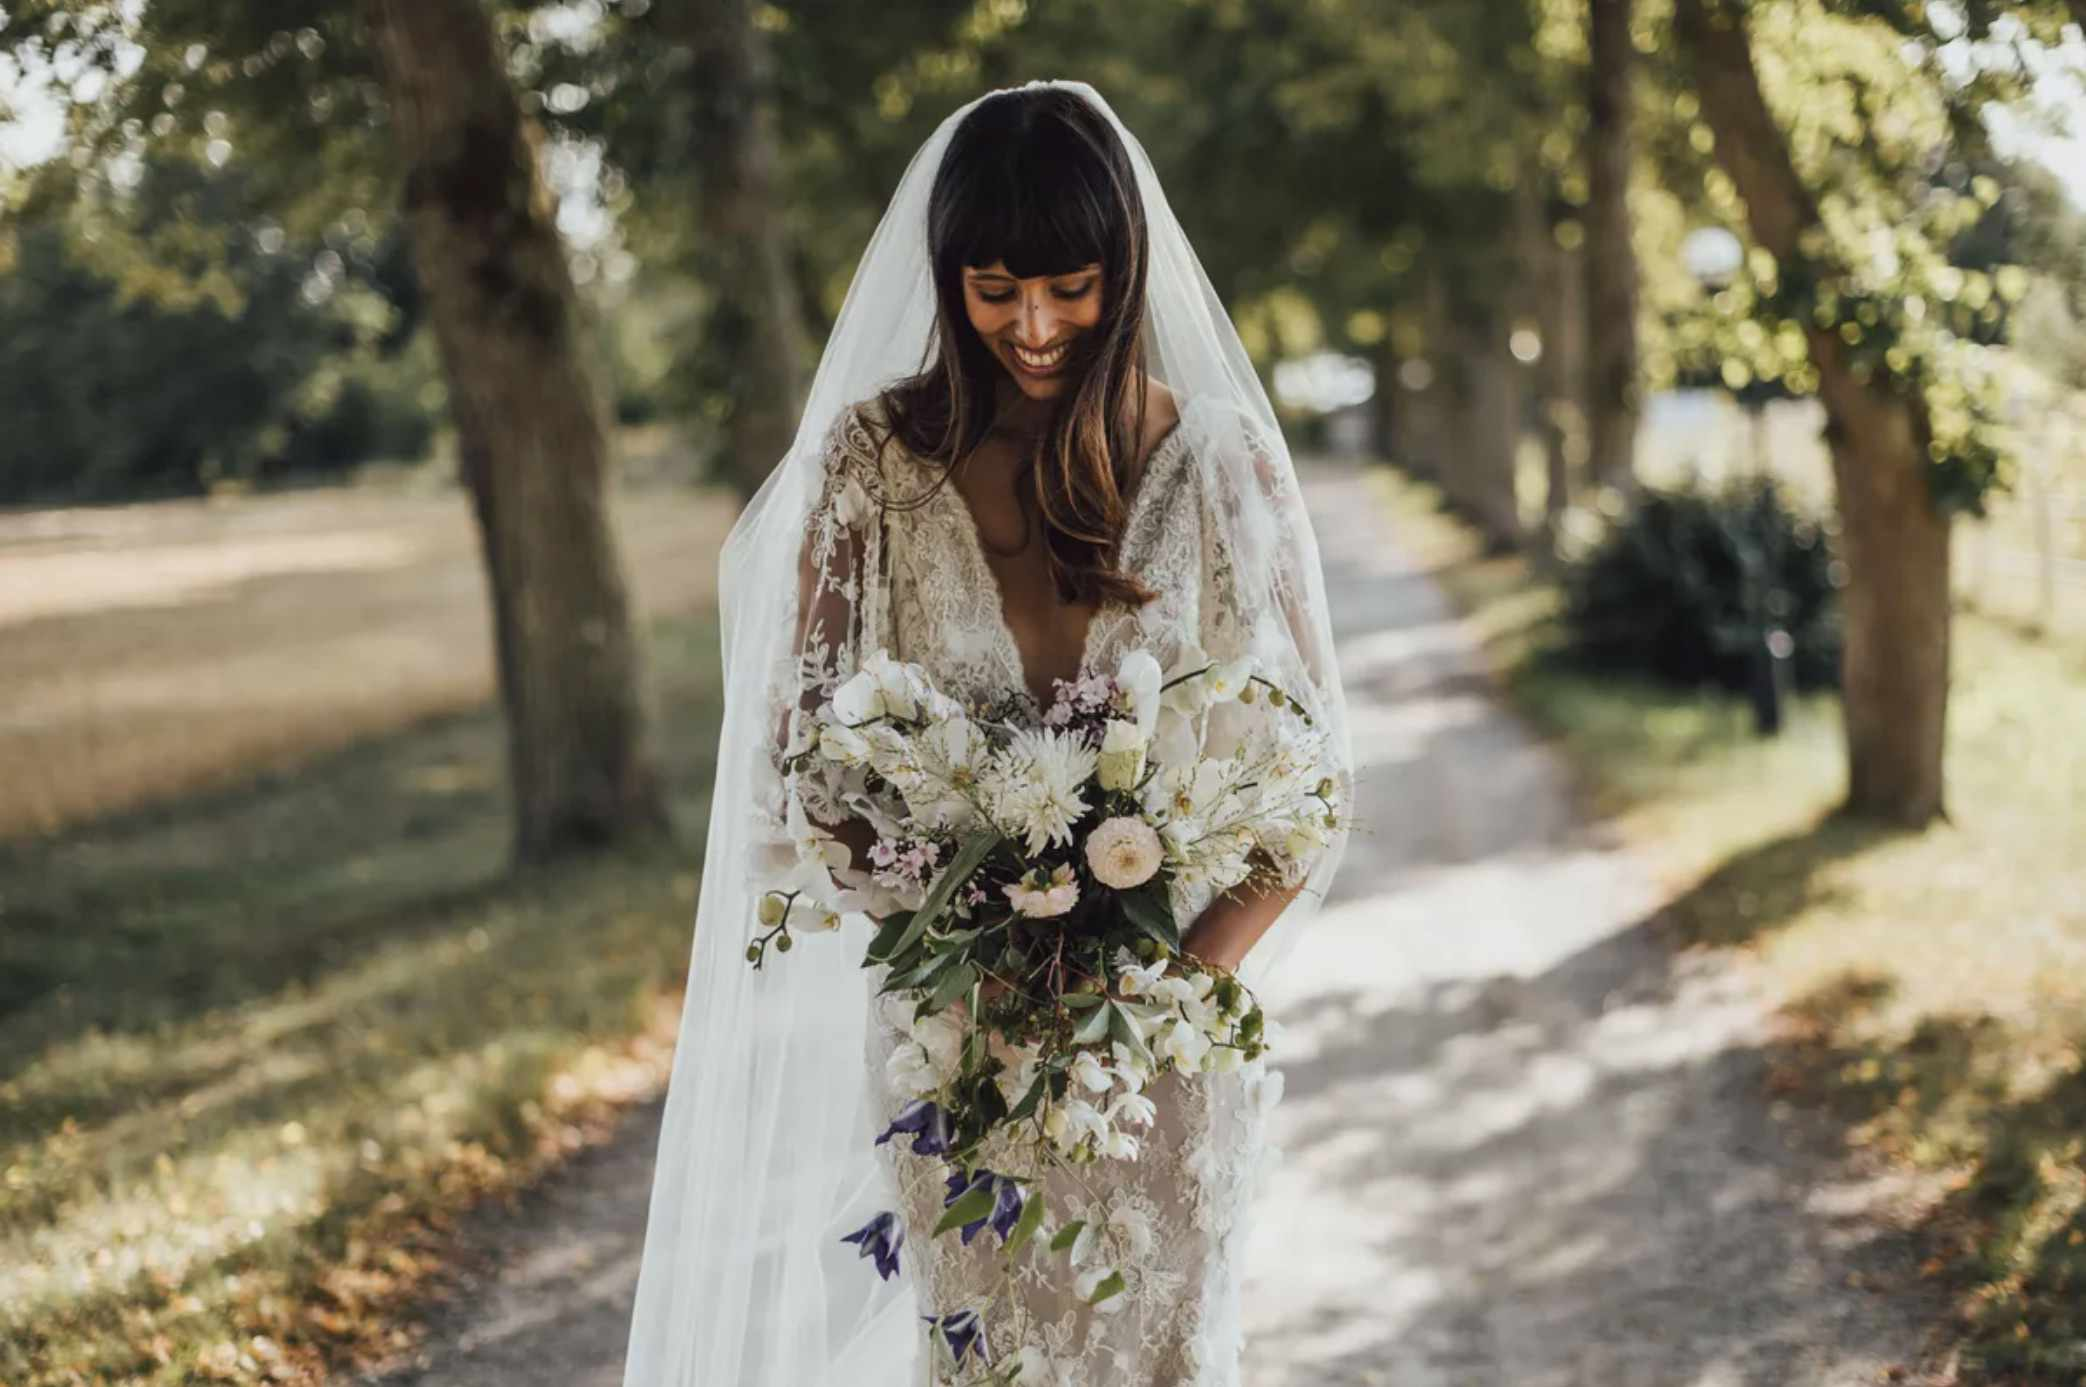 Bride with bangs looking at bouquet